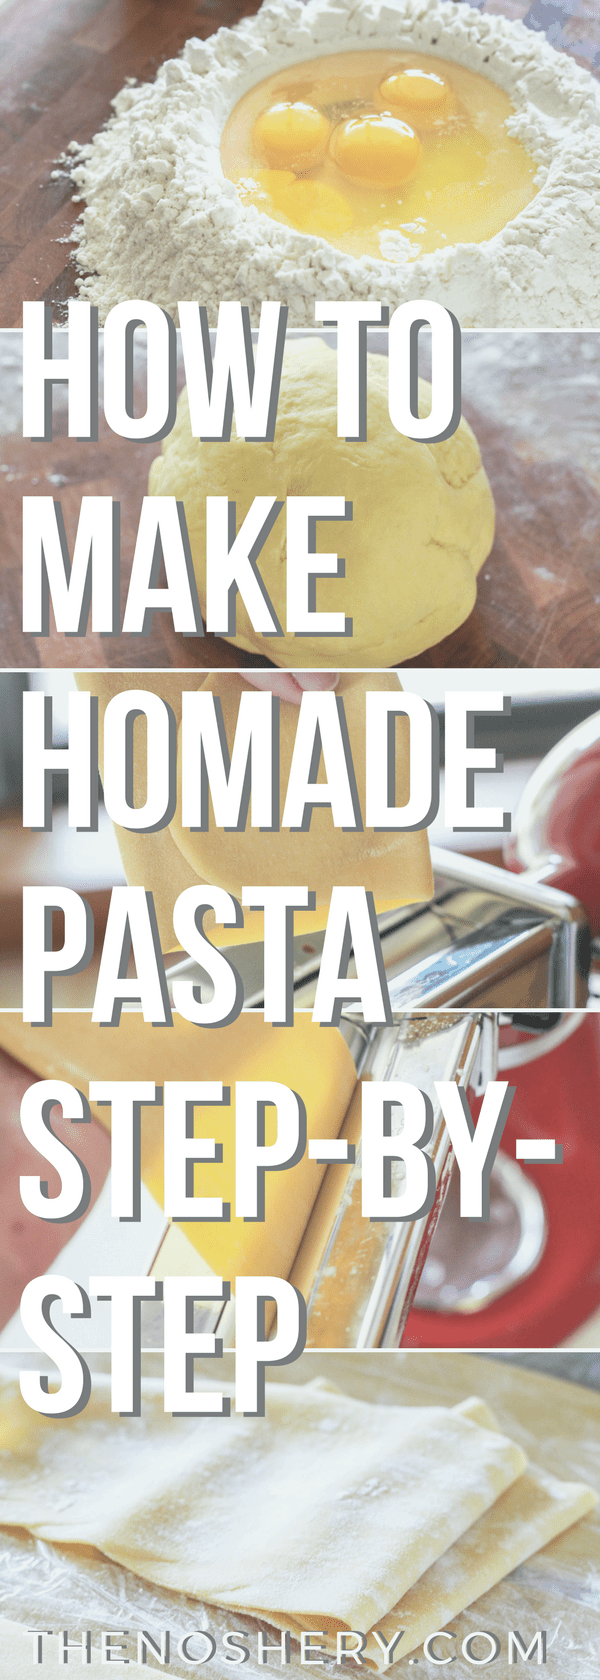 How to Make Homemade Pasta | Fresh pasta is a real treat! An easy fresh pasta recipe that is prepared at home with step-by-step instructions and make-ahead tips | The Noshery